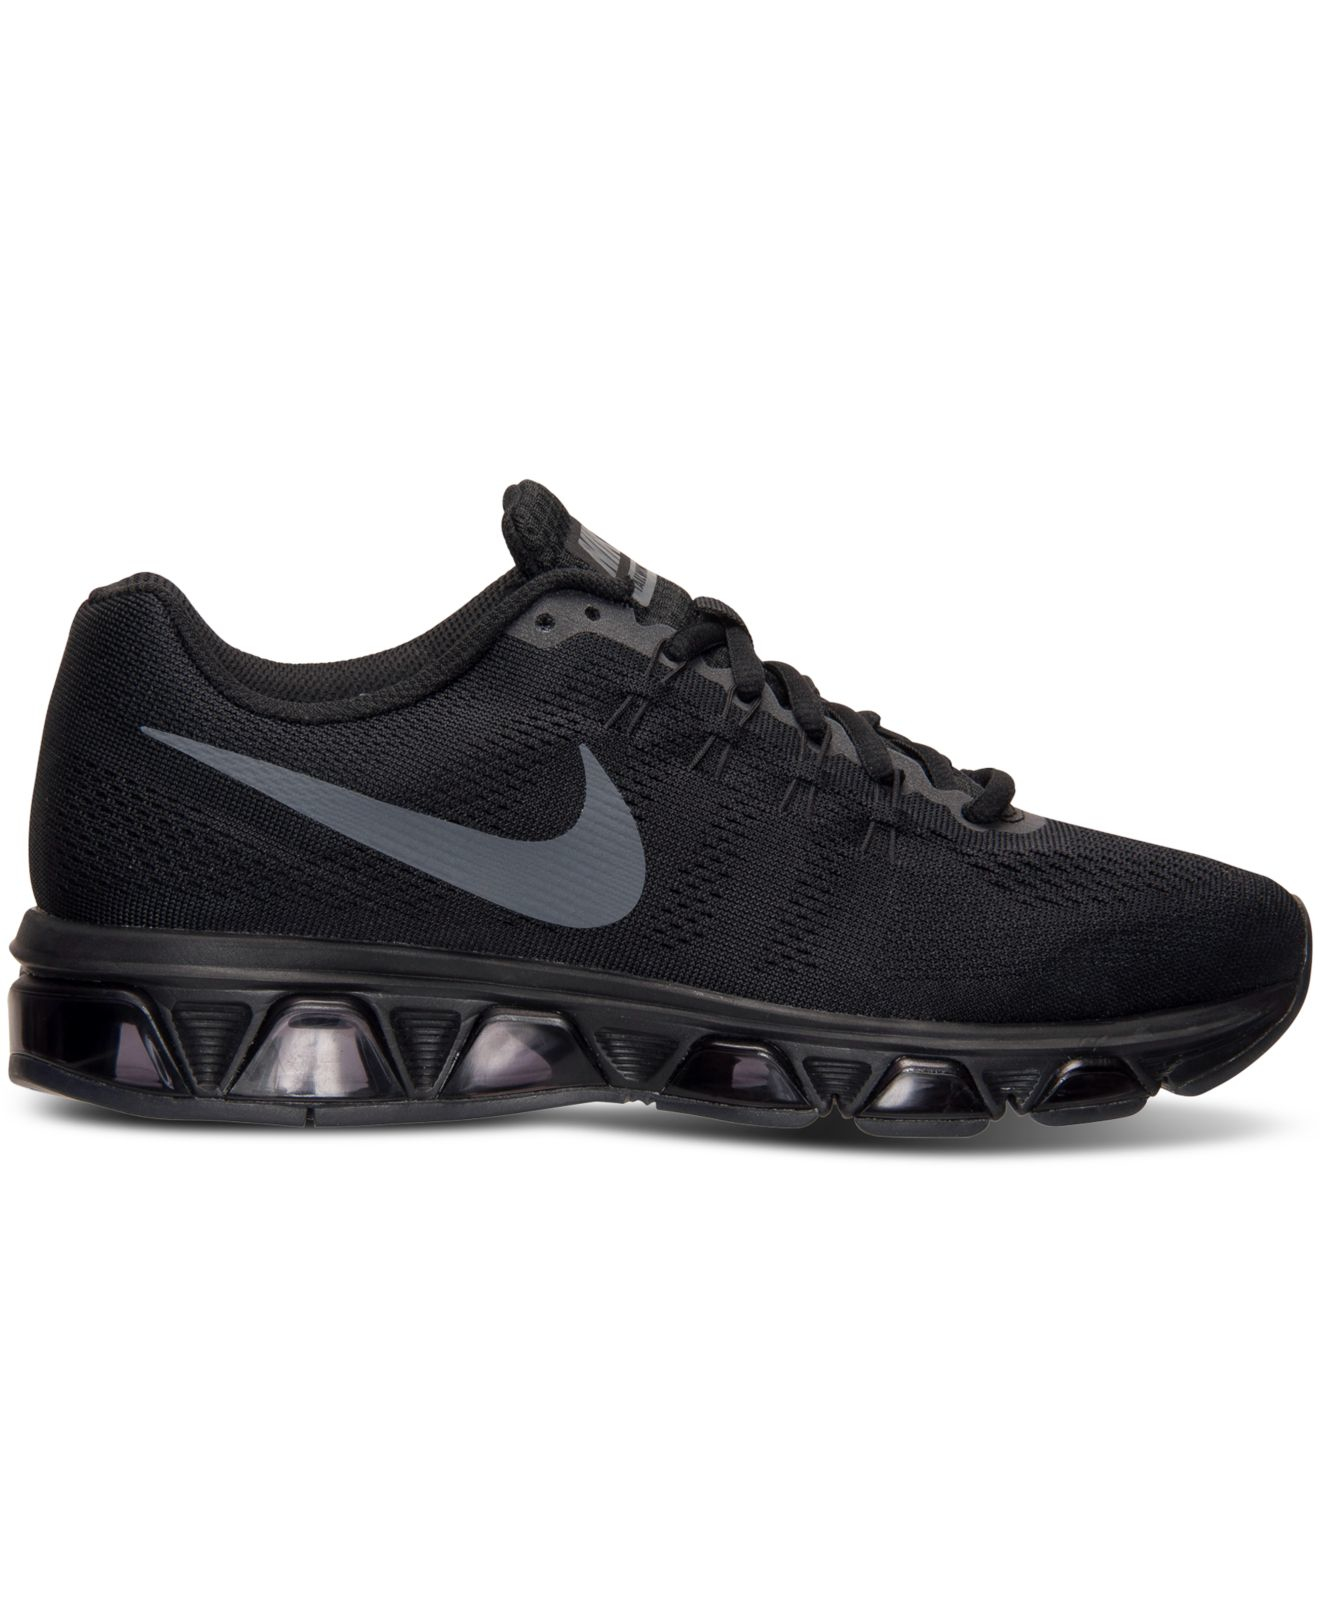 best sneakers 87cab 70c00 763eb 0c973  coupon for tailwind 8 running shoes nike black grey women  ea9a0 e2d74 czech gallery. previously